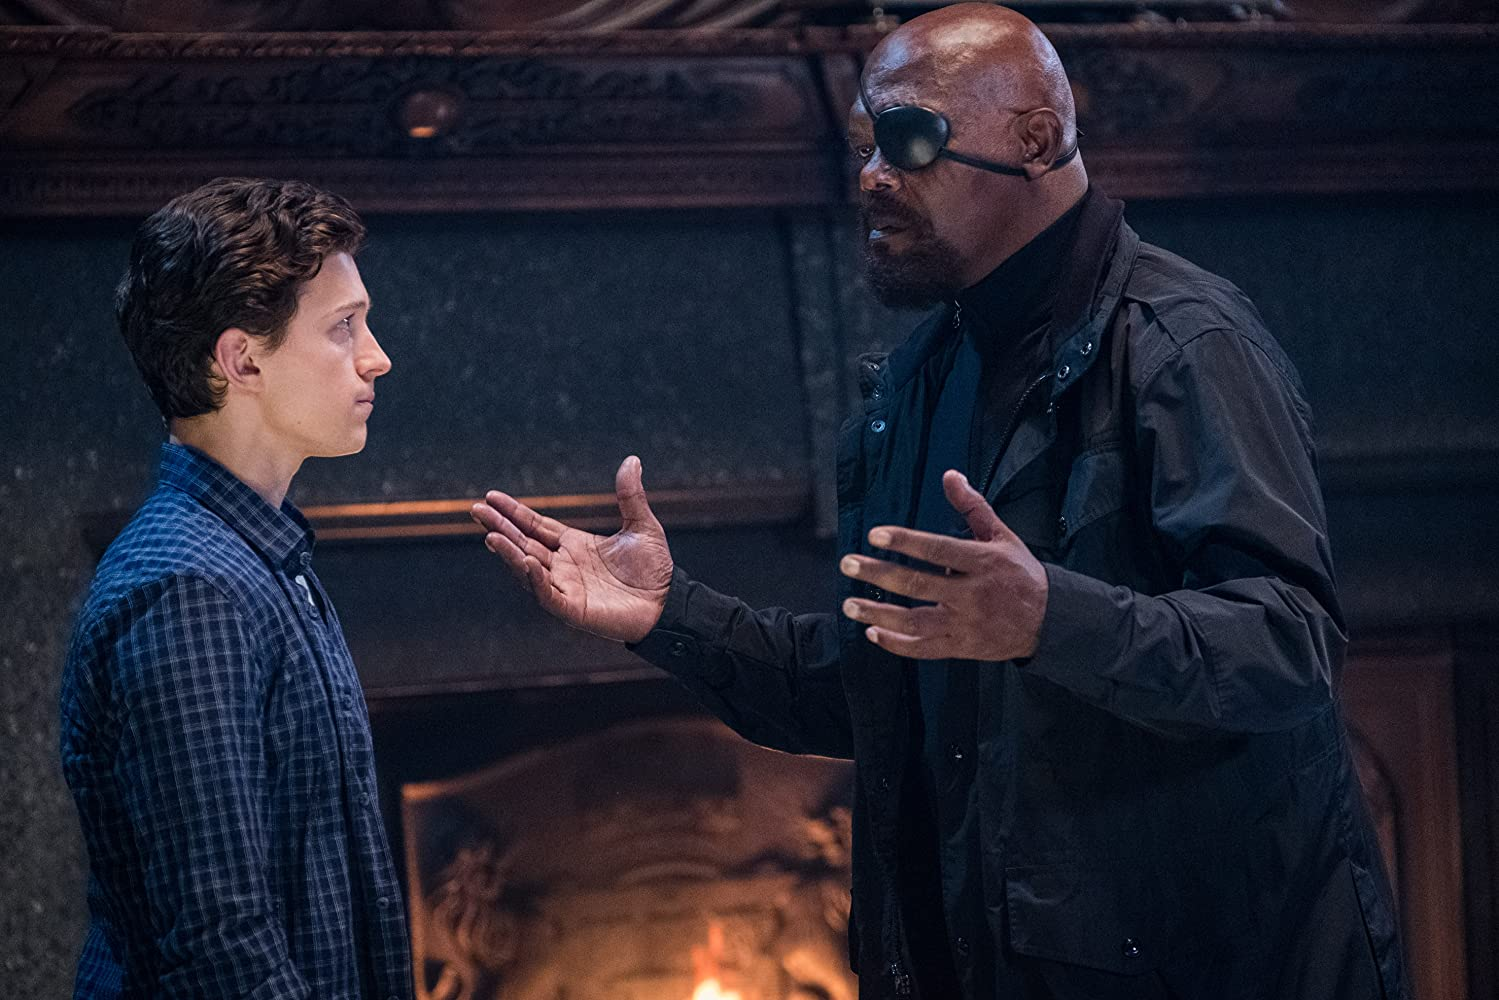 Samuel L. Jackson and Tom Holland in Spider-Man: Far from Home (2019)